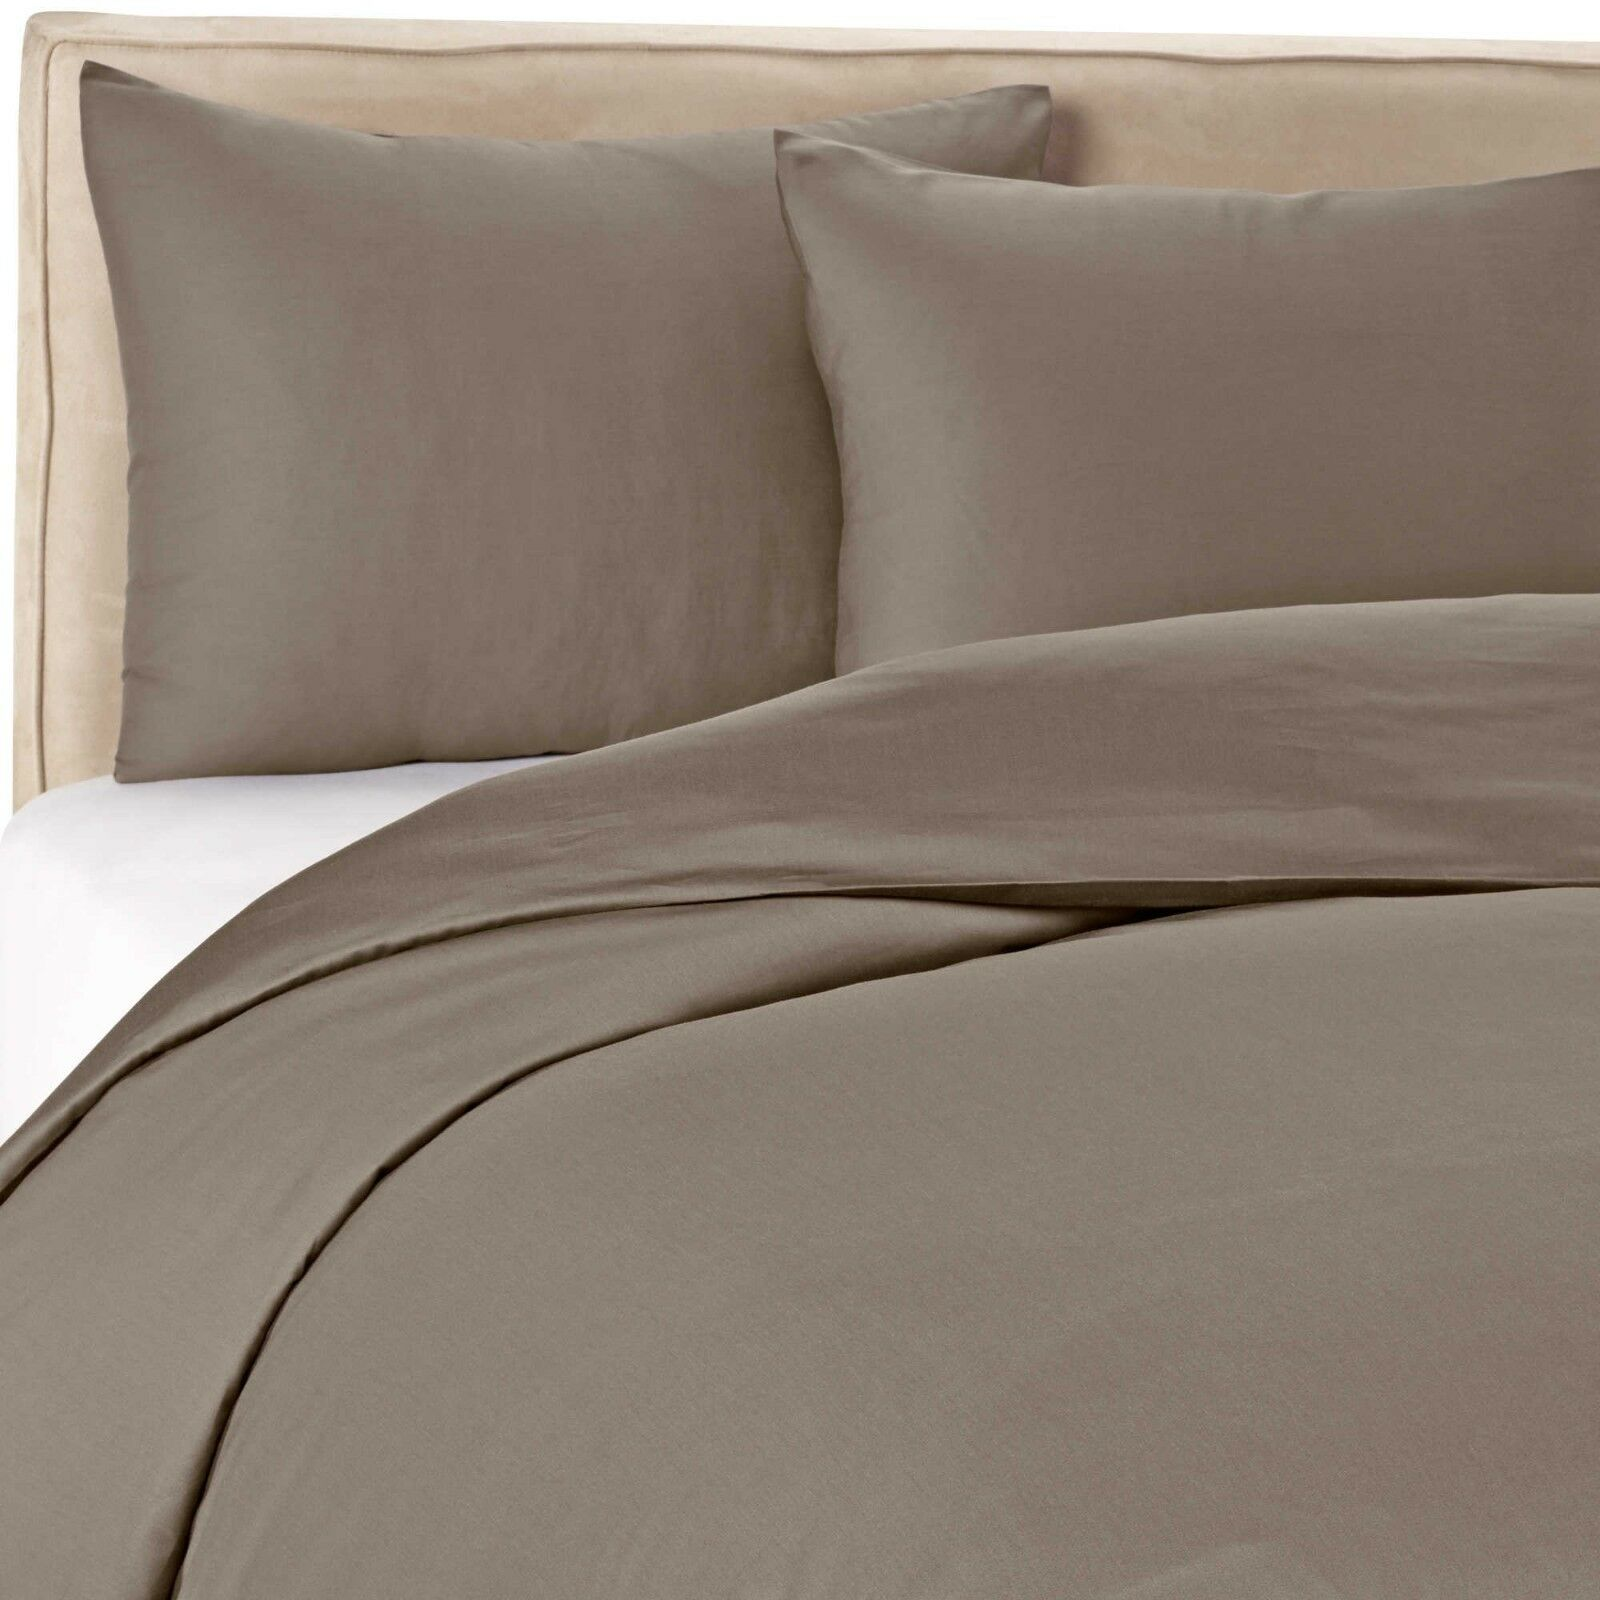 Wamsutta 400-Thread-Count Solid Duvet Cover Set in Grey